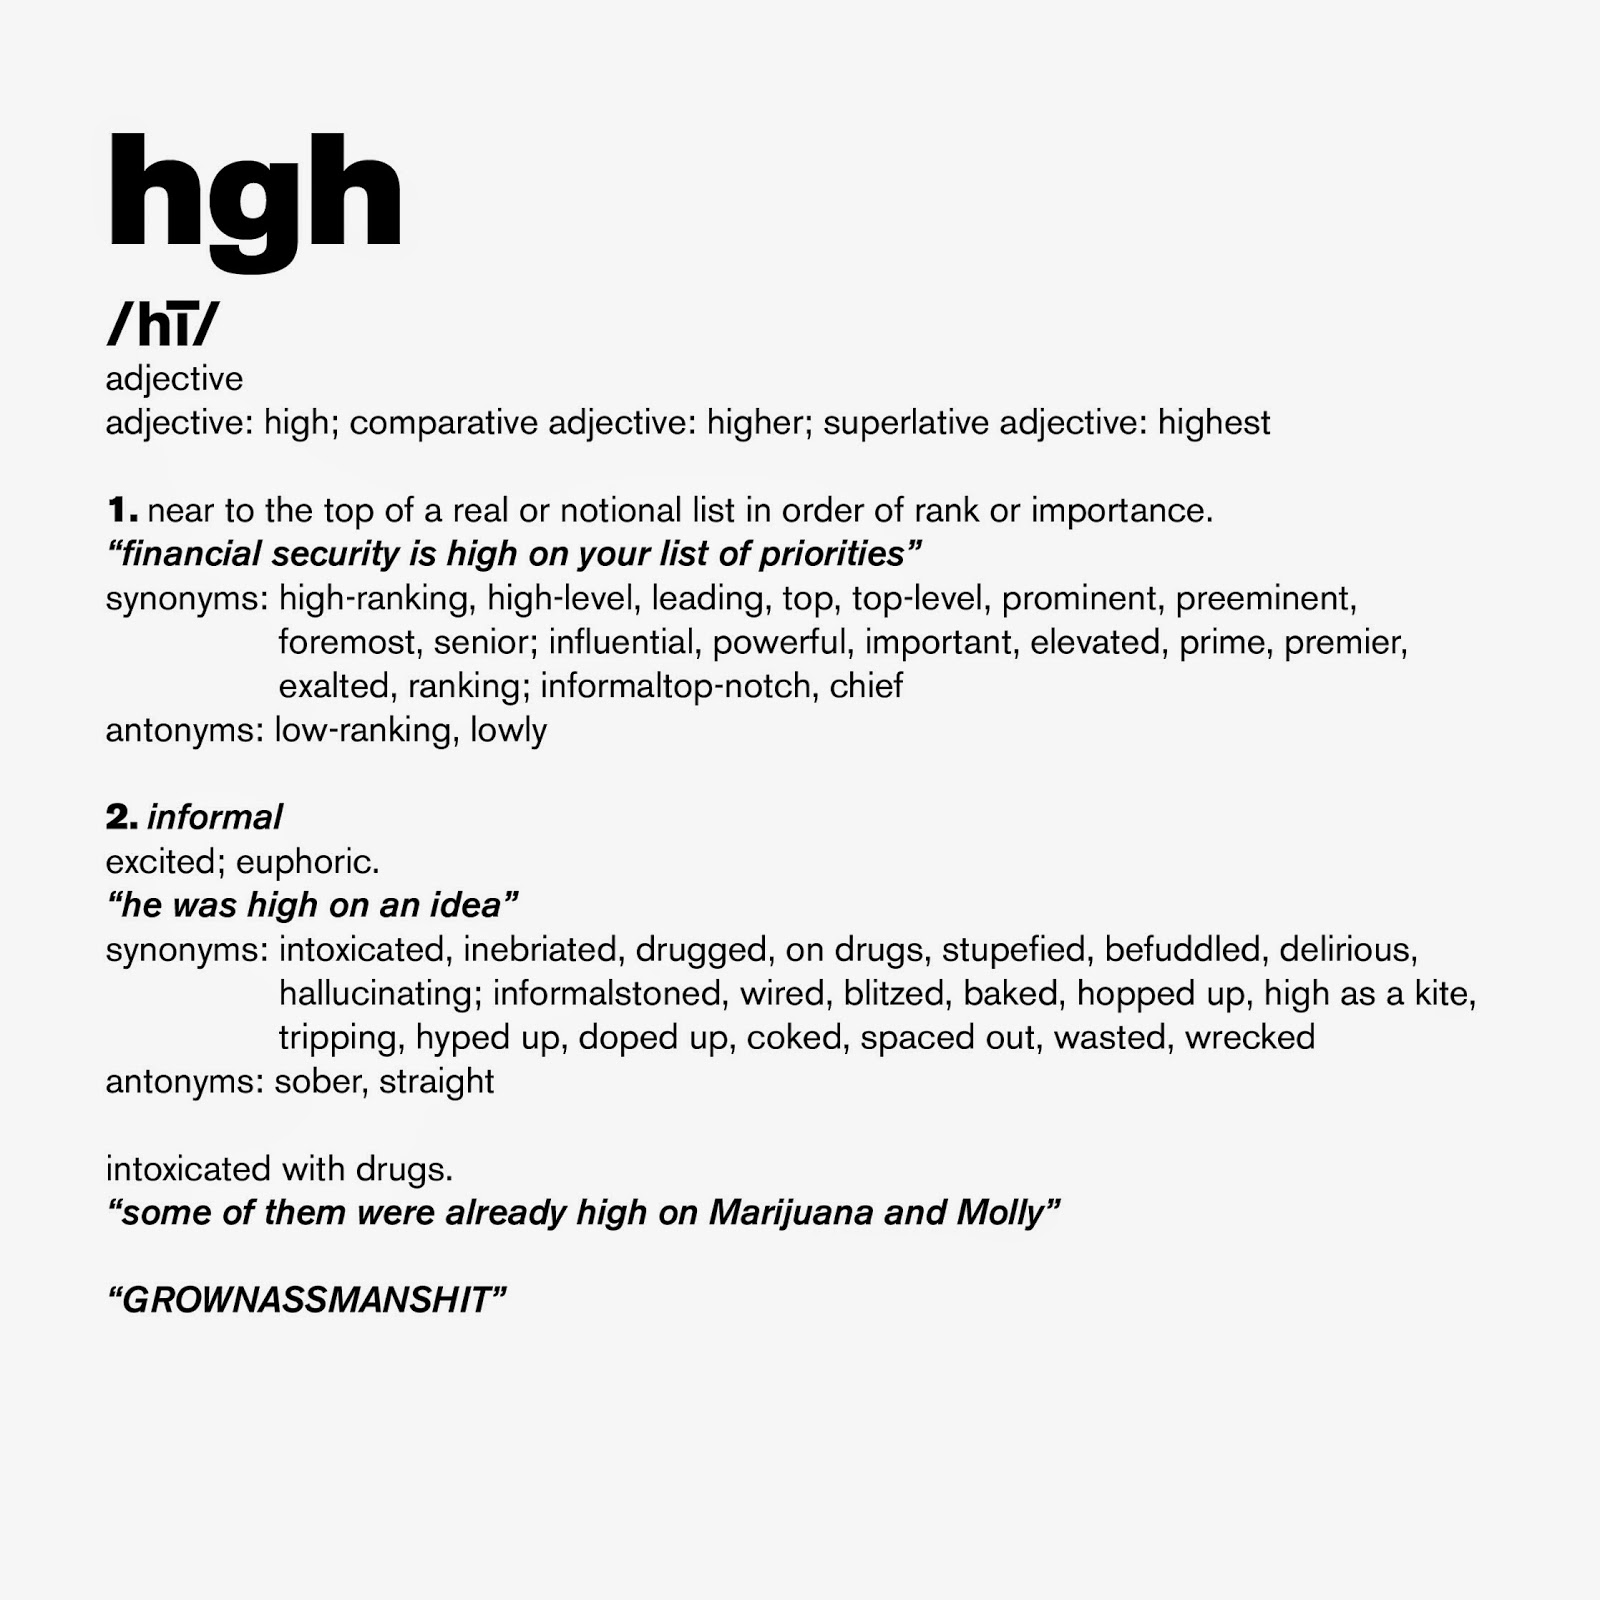 HGH DEFINITION.